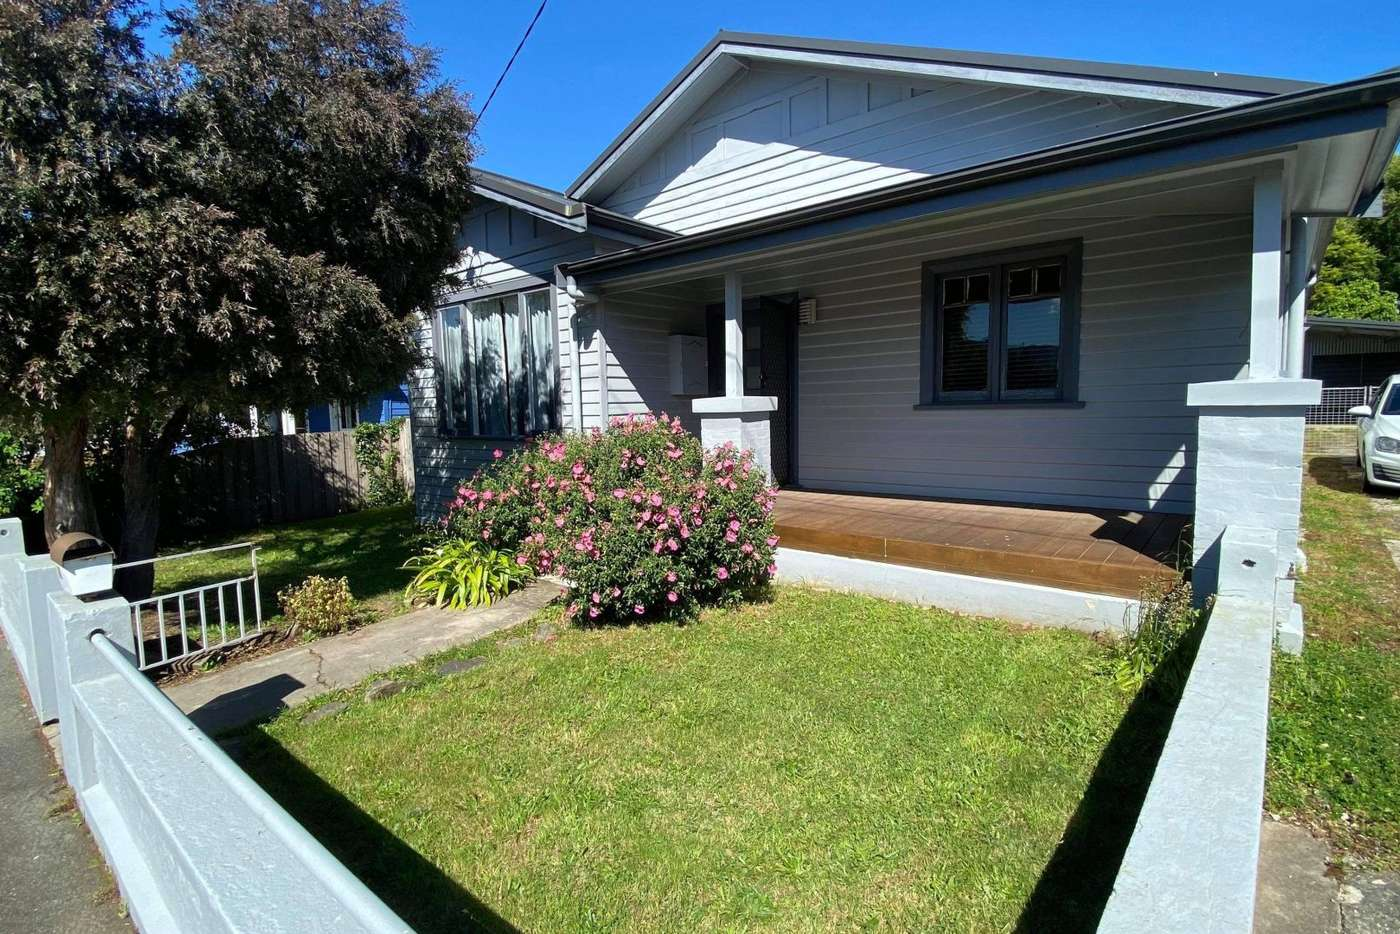 Main view of Homely house listing, 17 Lamont Street, Invermay TAS 7248